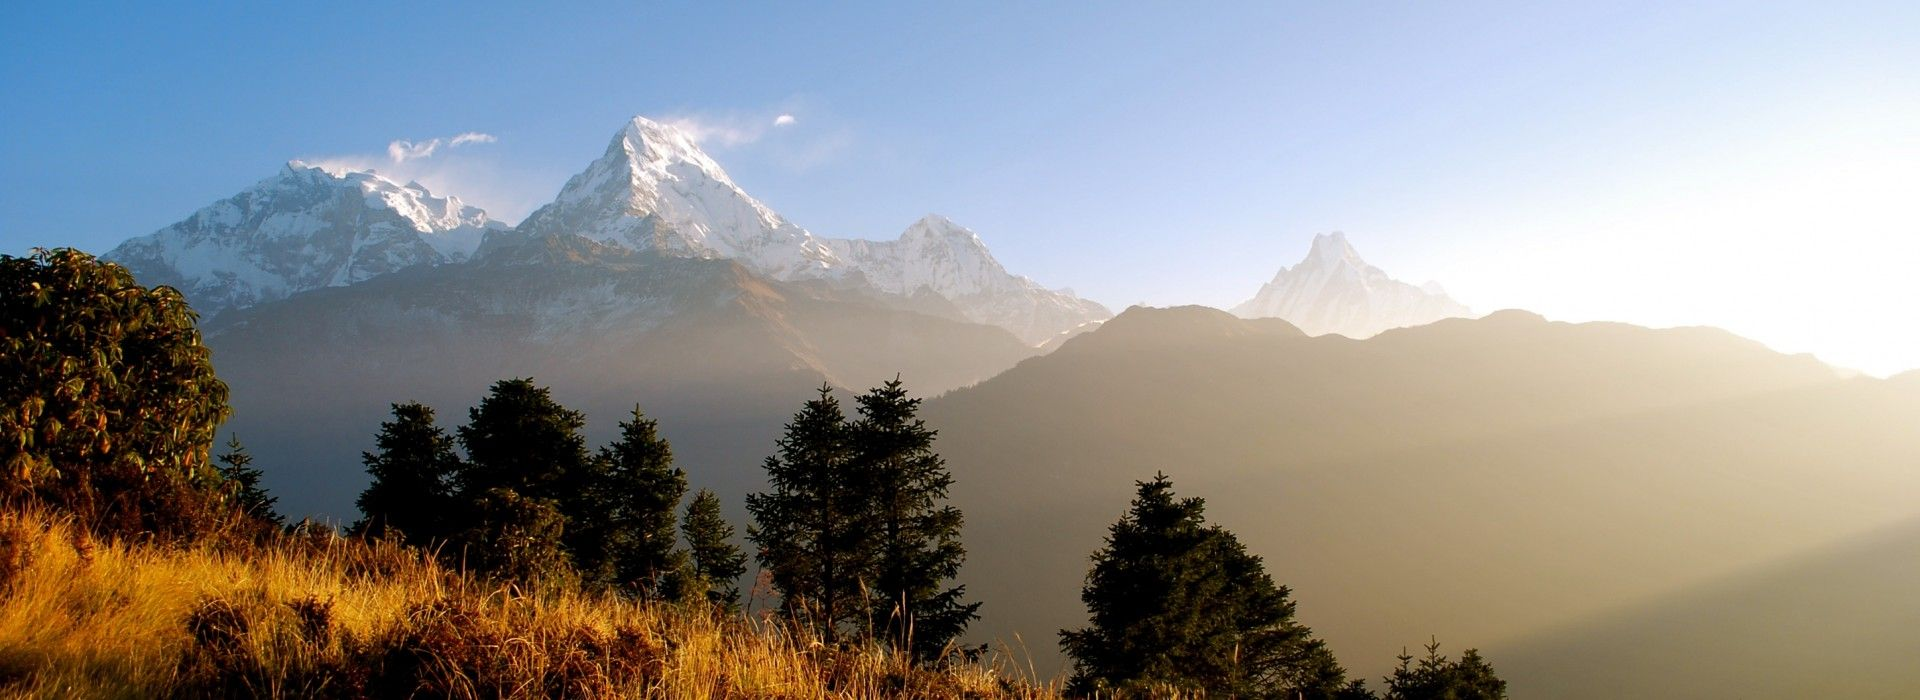 Cultural, religious and historic sites Tours in Pokhara